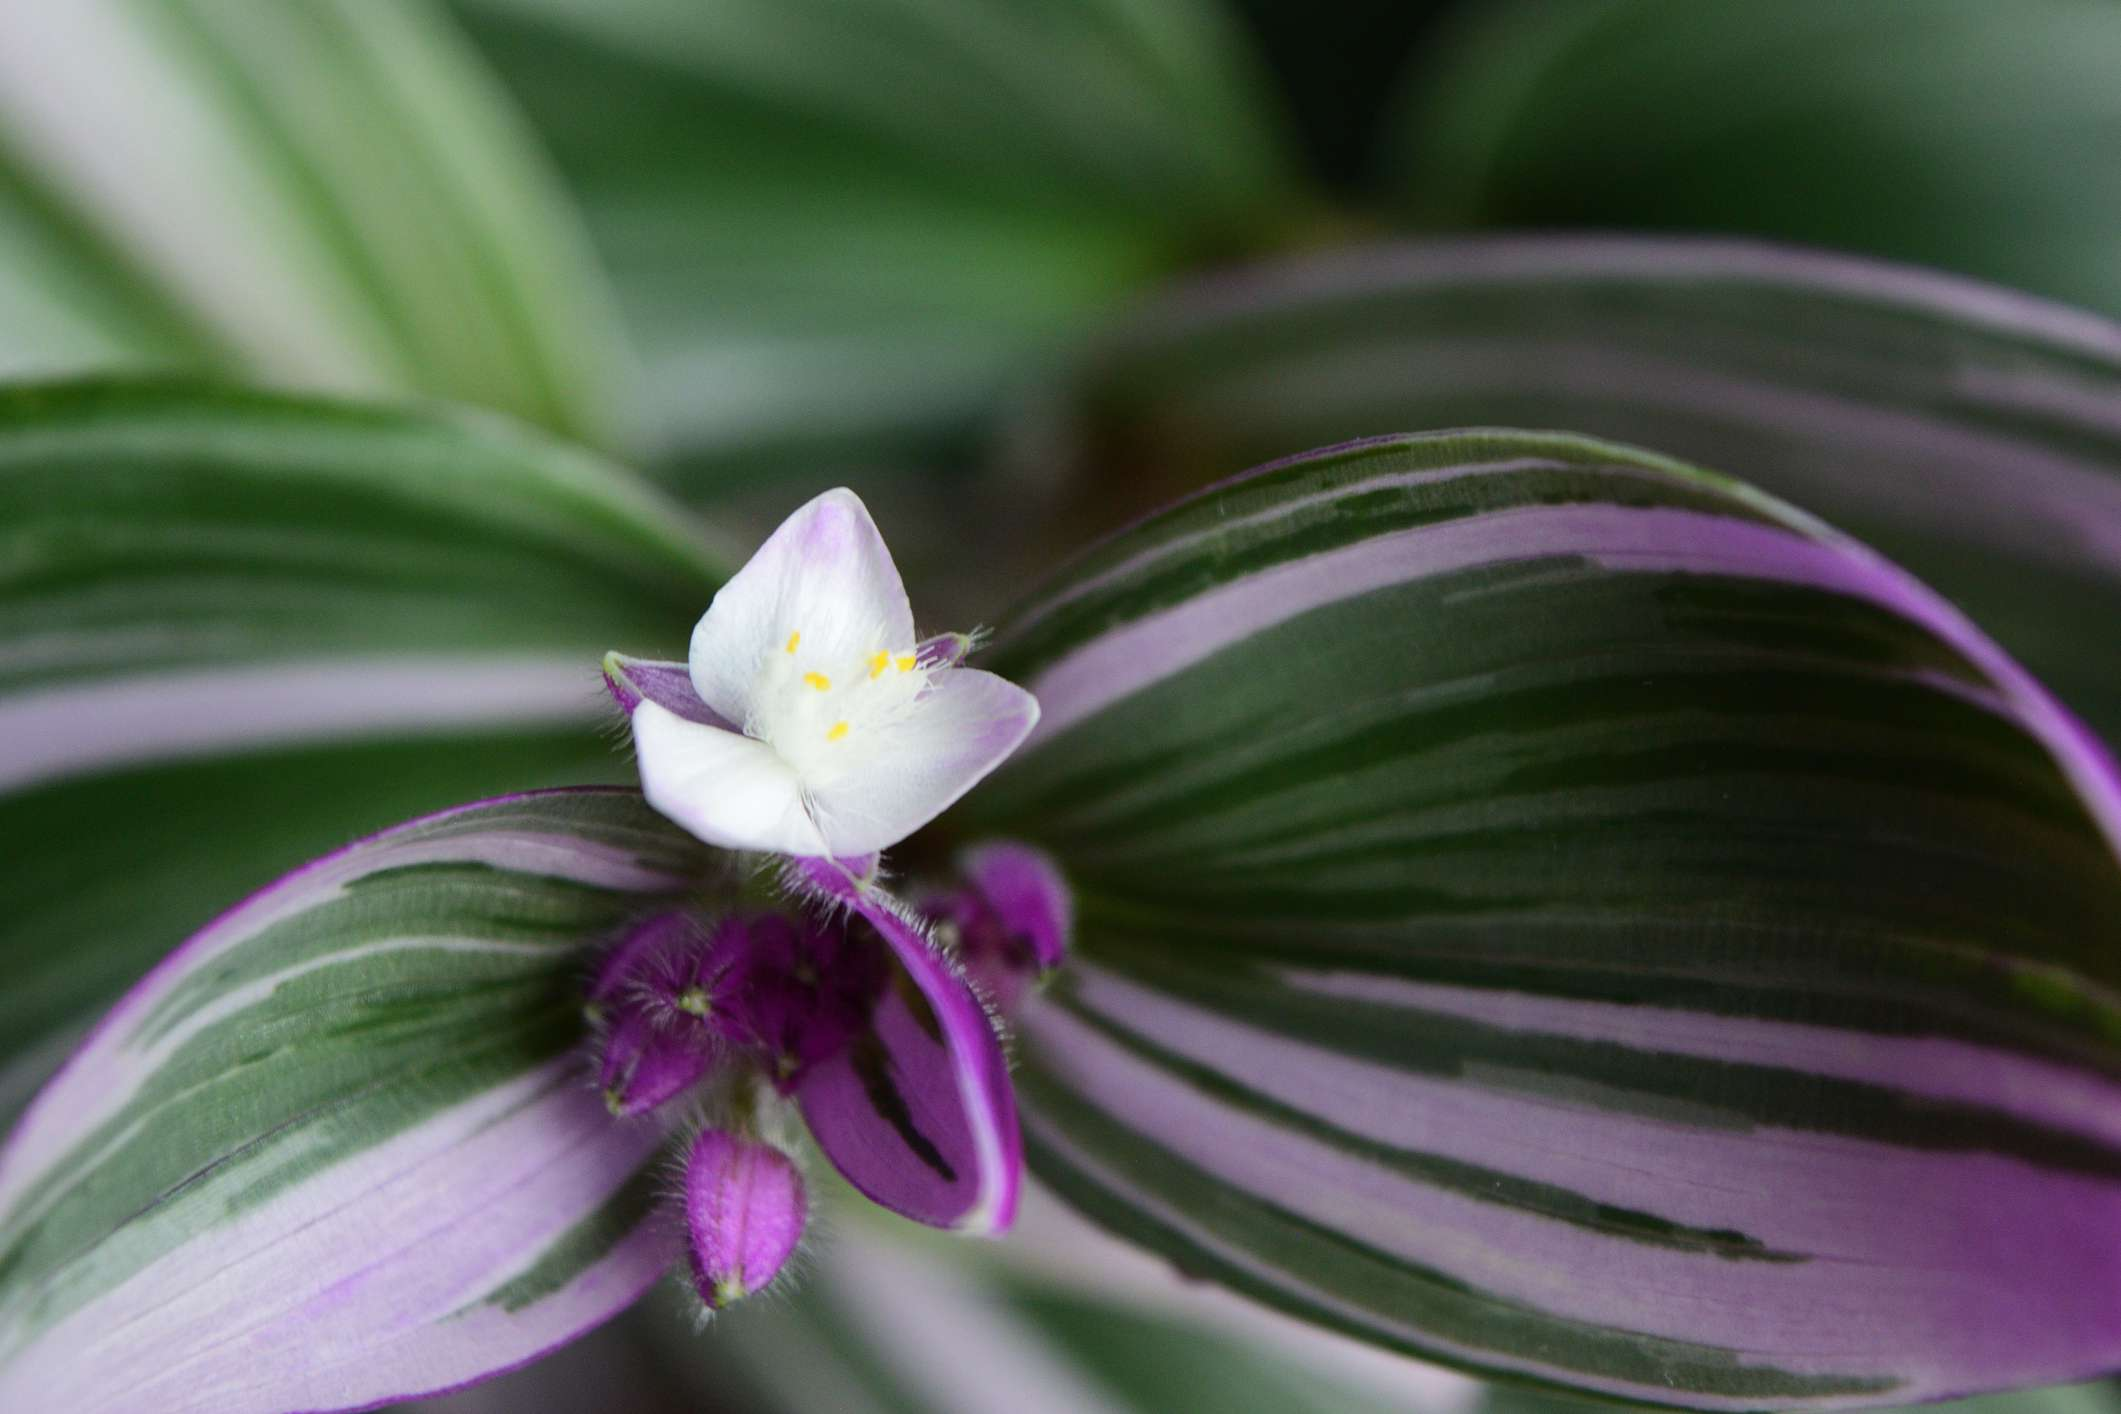 Closeup of a Tradescantia Nanouk blossom with green, pink, and white leaves; pink buds; and a white flower